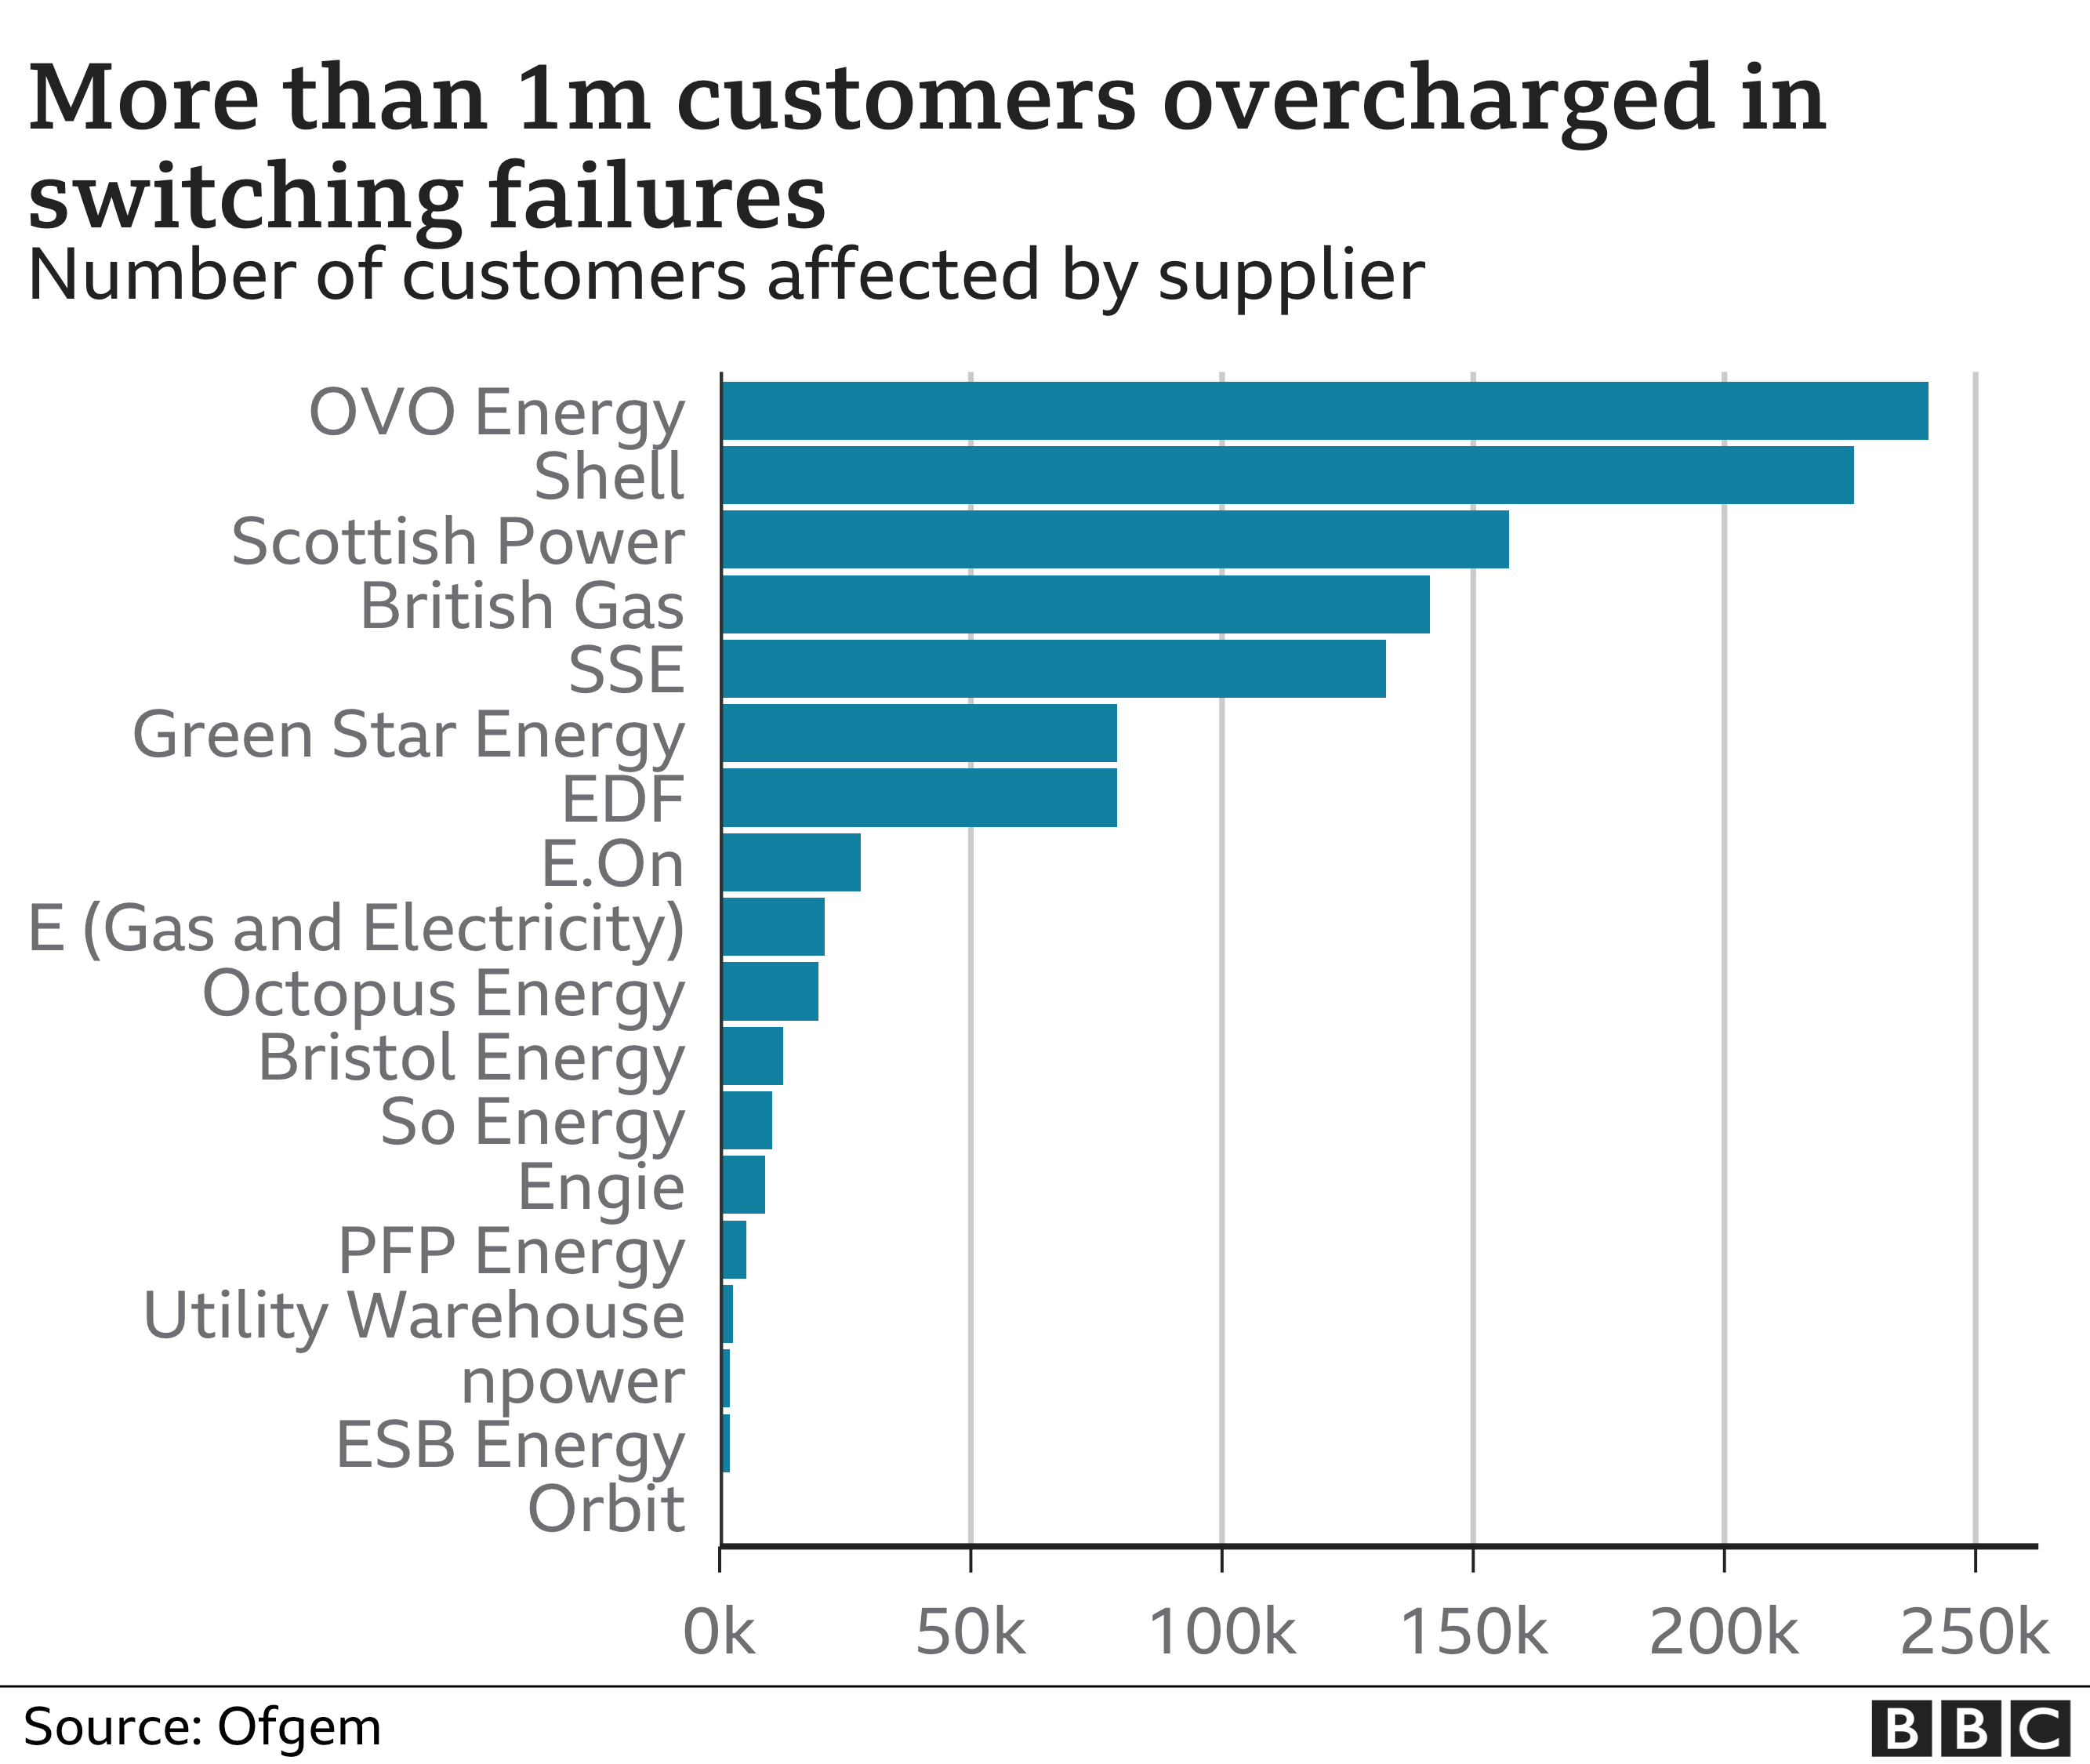 Chart showing number of customers overcharged for switching failures